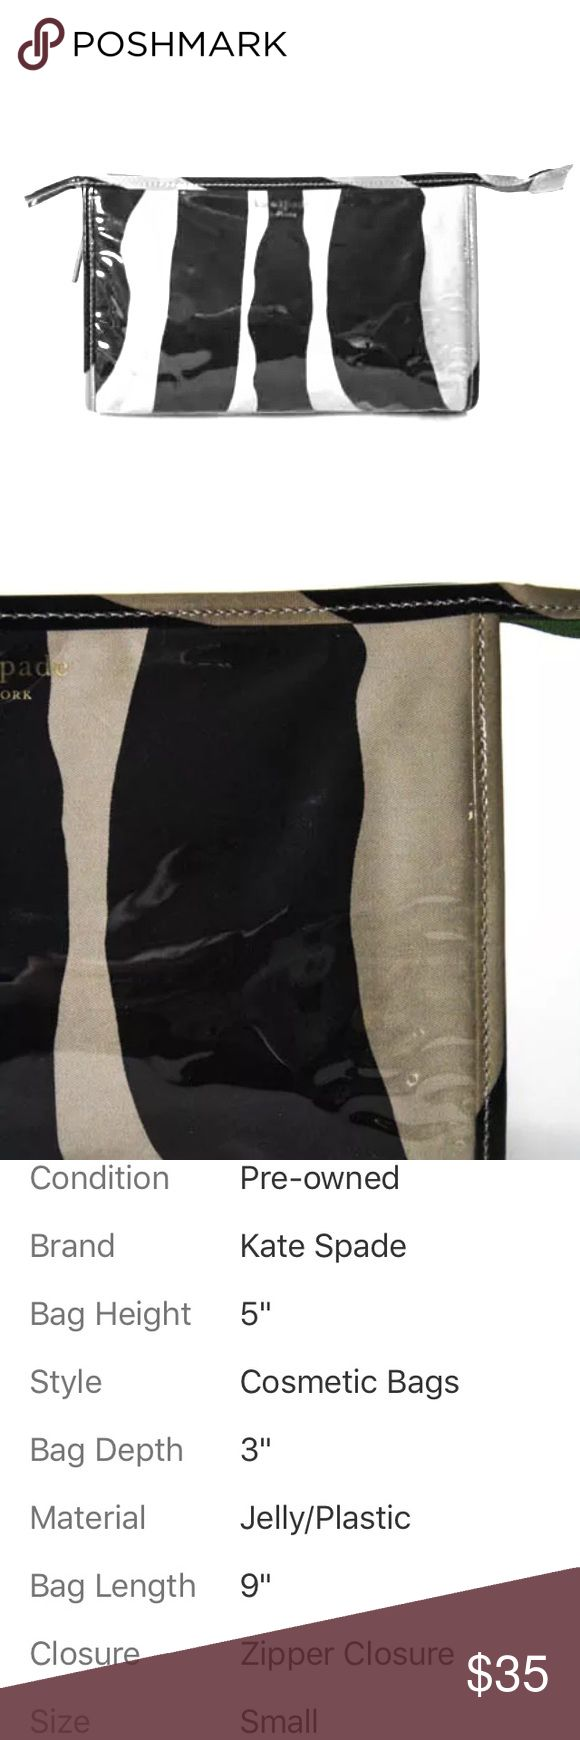 KATE SPADE BROWN BLACK PLASTIC SMALL COSMETIC BAG KATE SPADE BROWN BLACK PLASTIC SMALL COSMETIC BAG Description: Zipper Closure Authenticated by a Kate Spade Aunthenticator Jelly/Plastic Condition: 📍Pre-Owned 📍Visible Wear Throughout kate spade Bags Cosmetic Bags & Cases